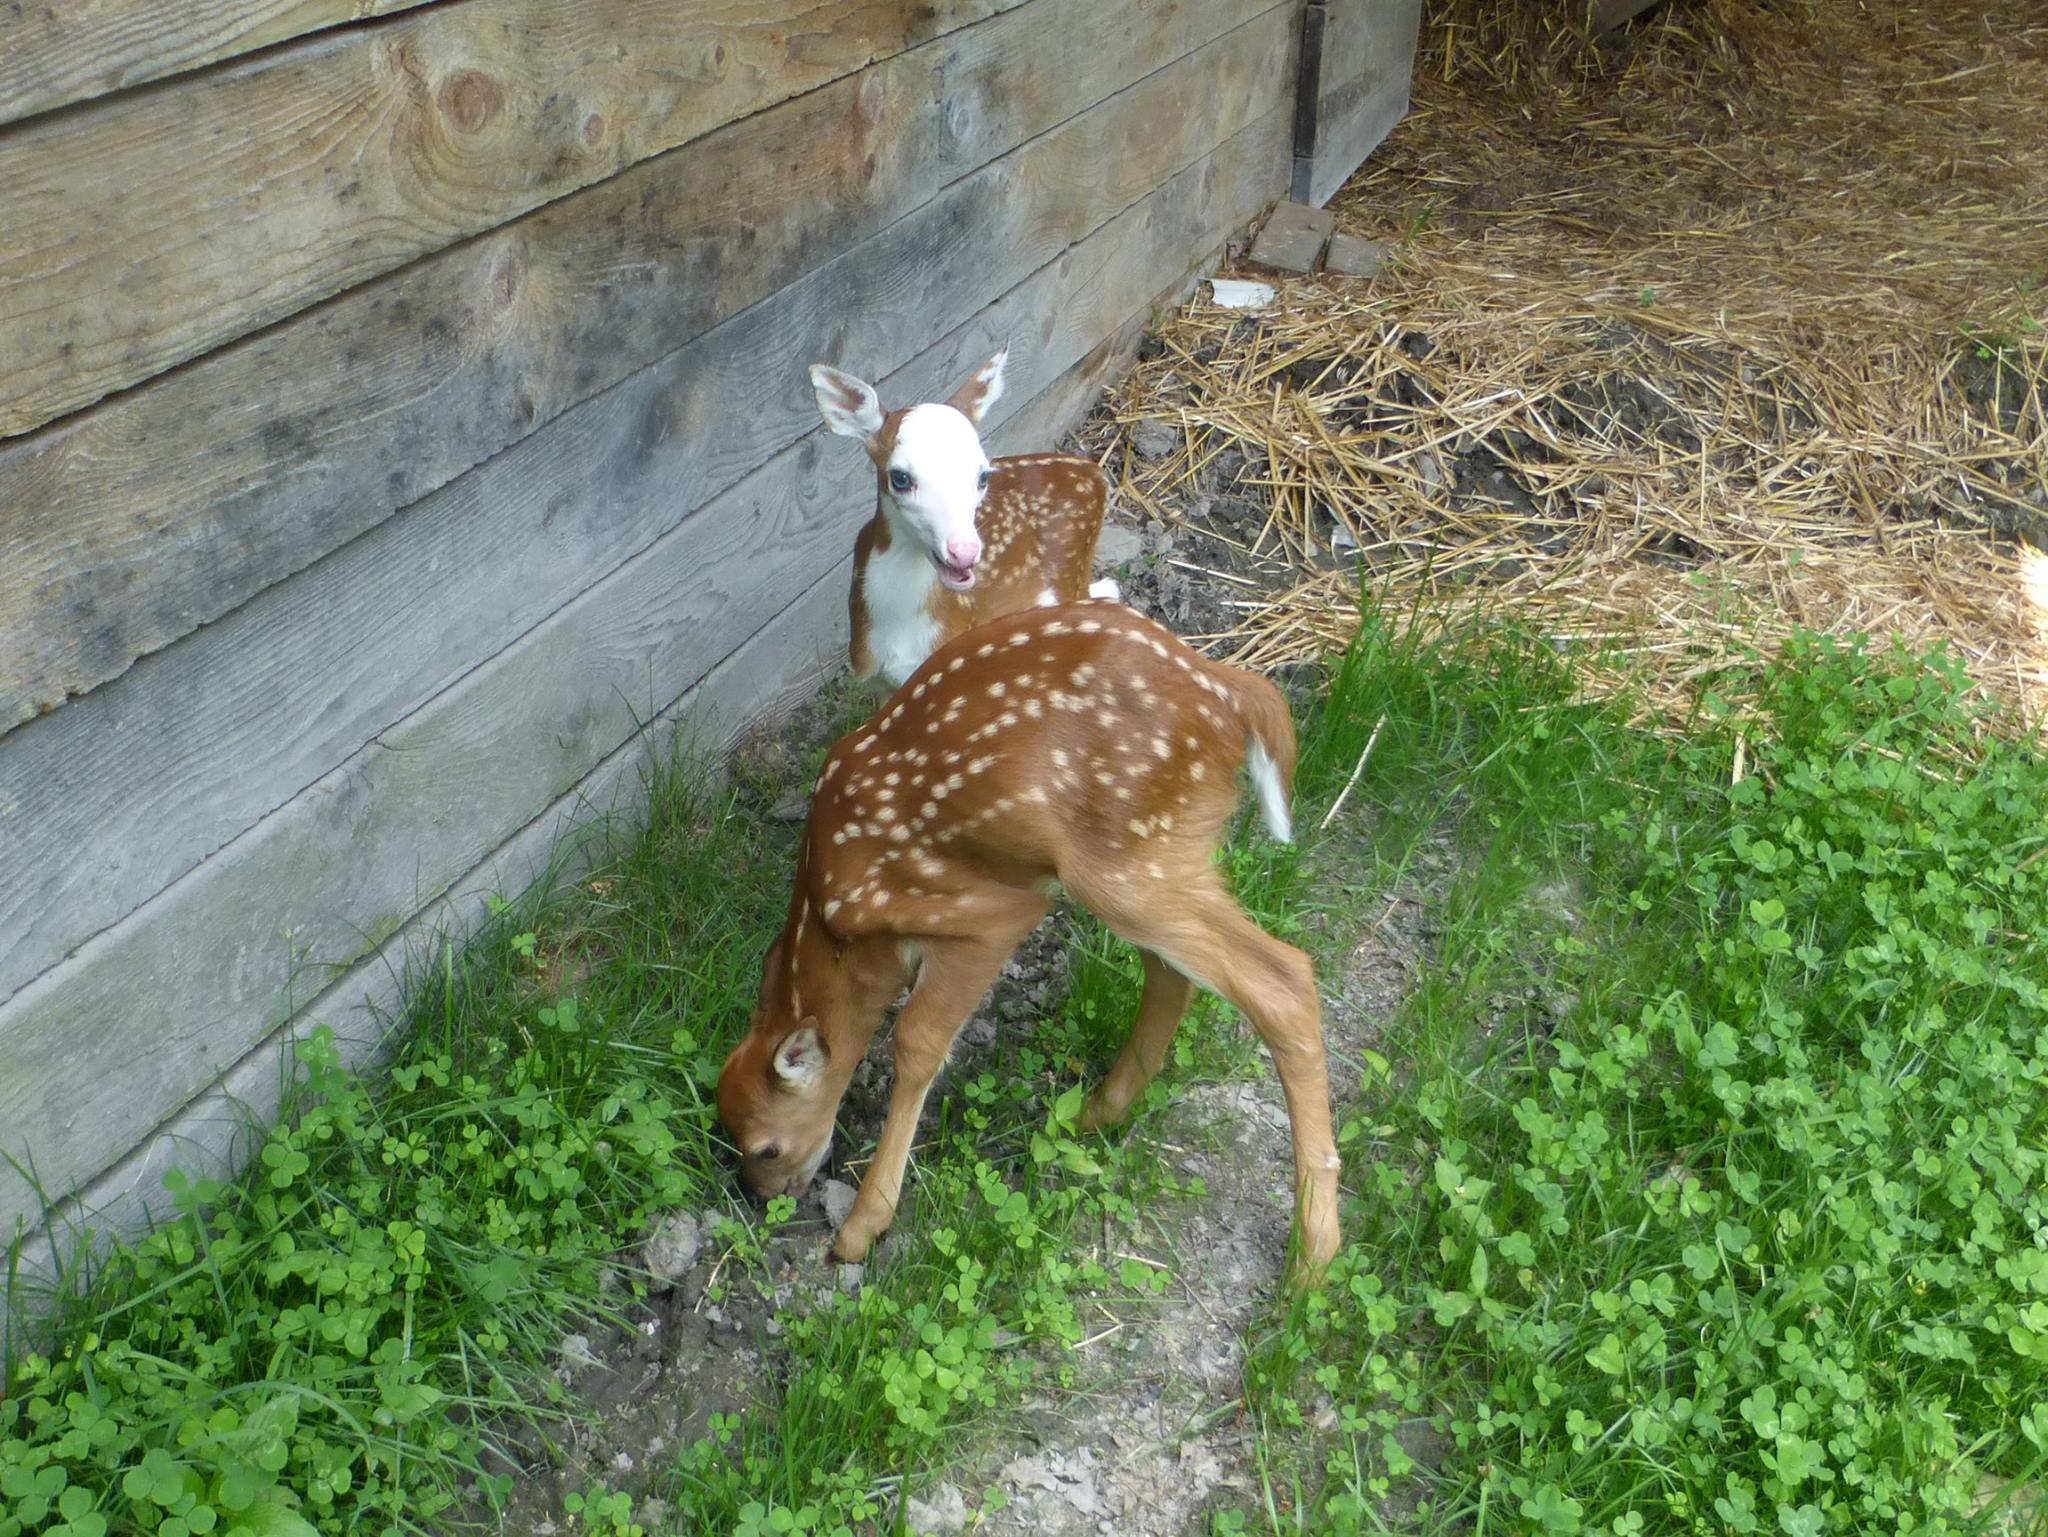 Fawns - Parker and Peggy Ann at the Double Diamond Deer Ranch in Cooksburg. Pa.